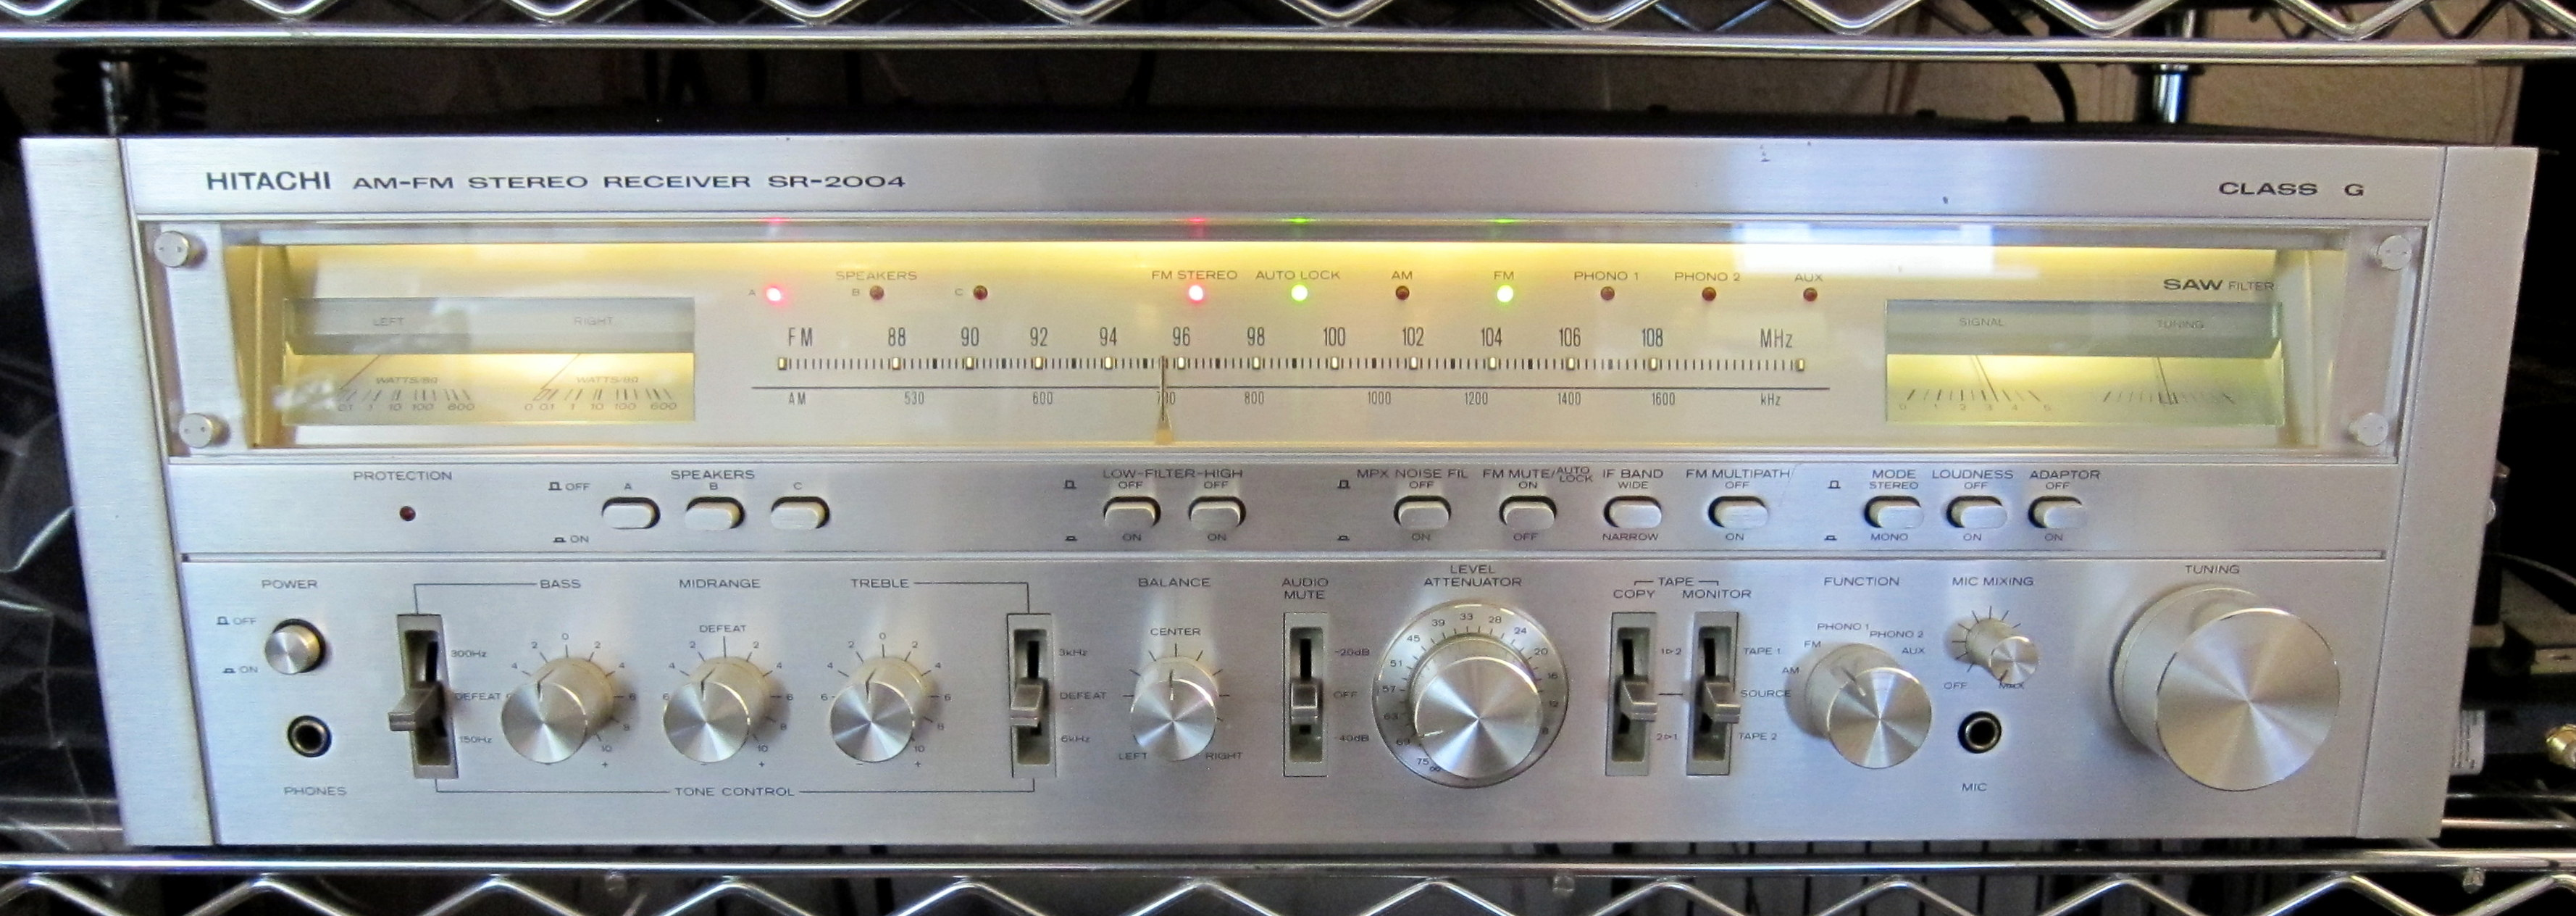 My Favorite Receivers: The Greatest Stereo Receivers